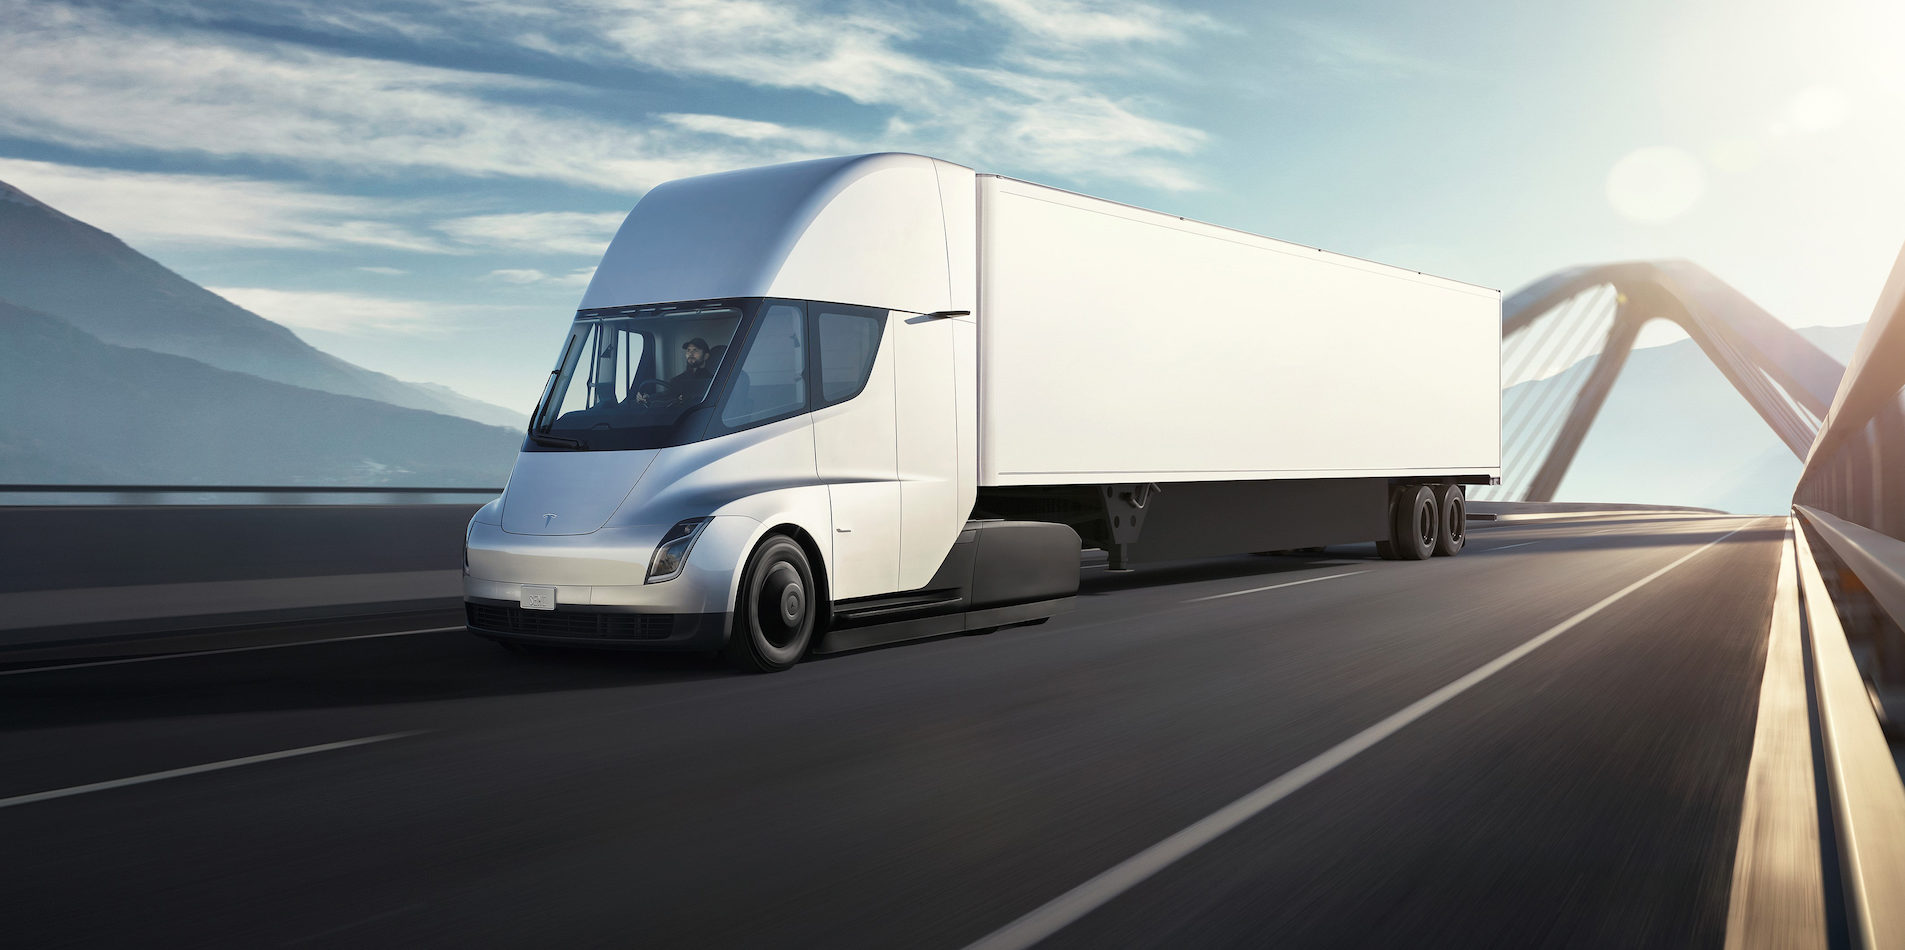 A video featuring a prototype version of the Tesla Semi truck was posted a few days ago, but it wasn't until today that the viewers noticed no one's driving it.